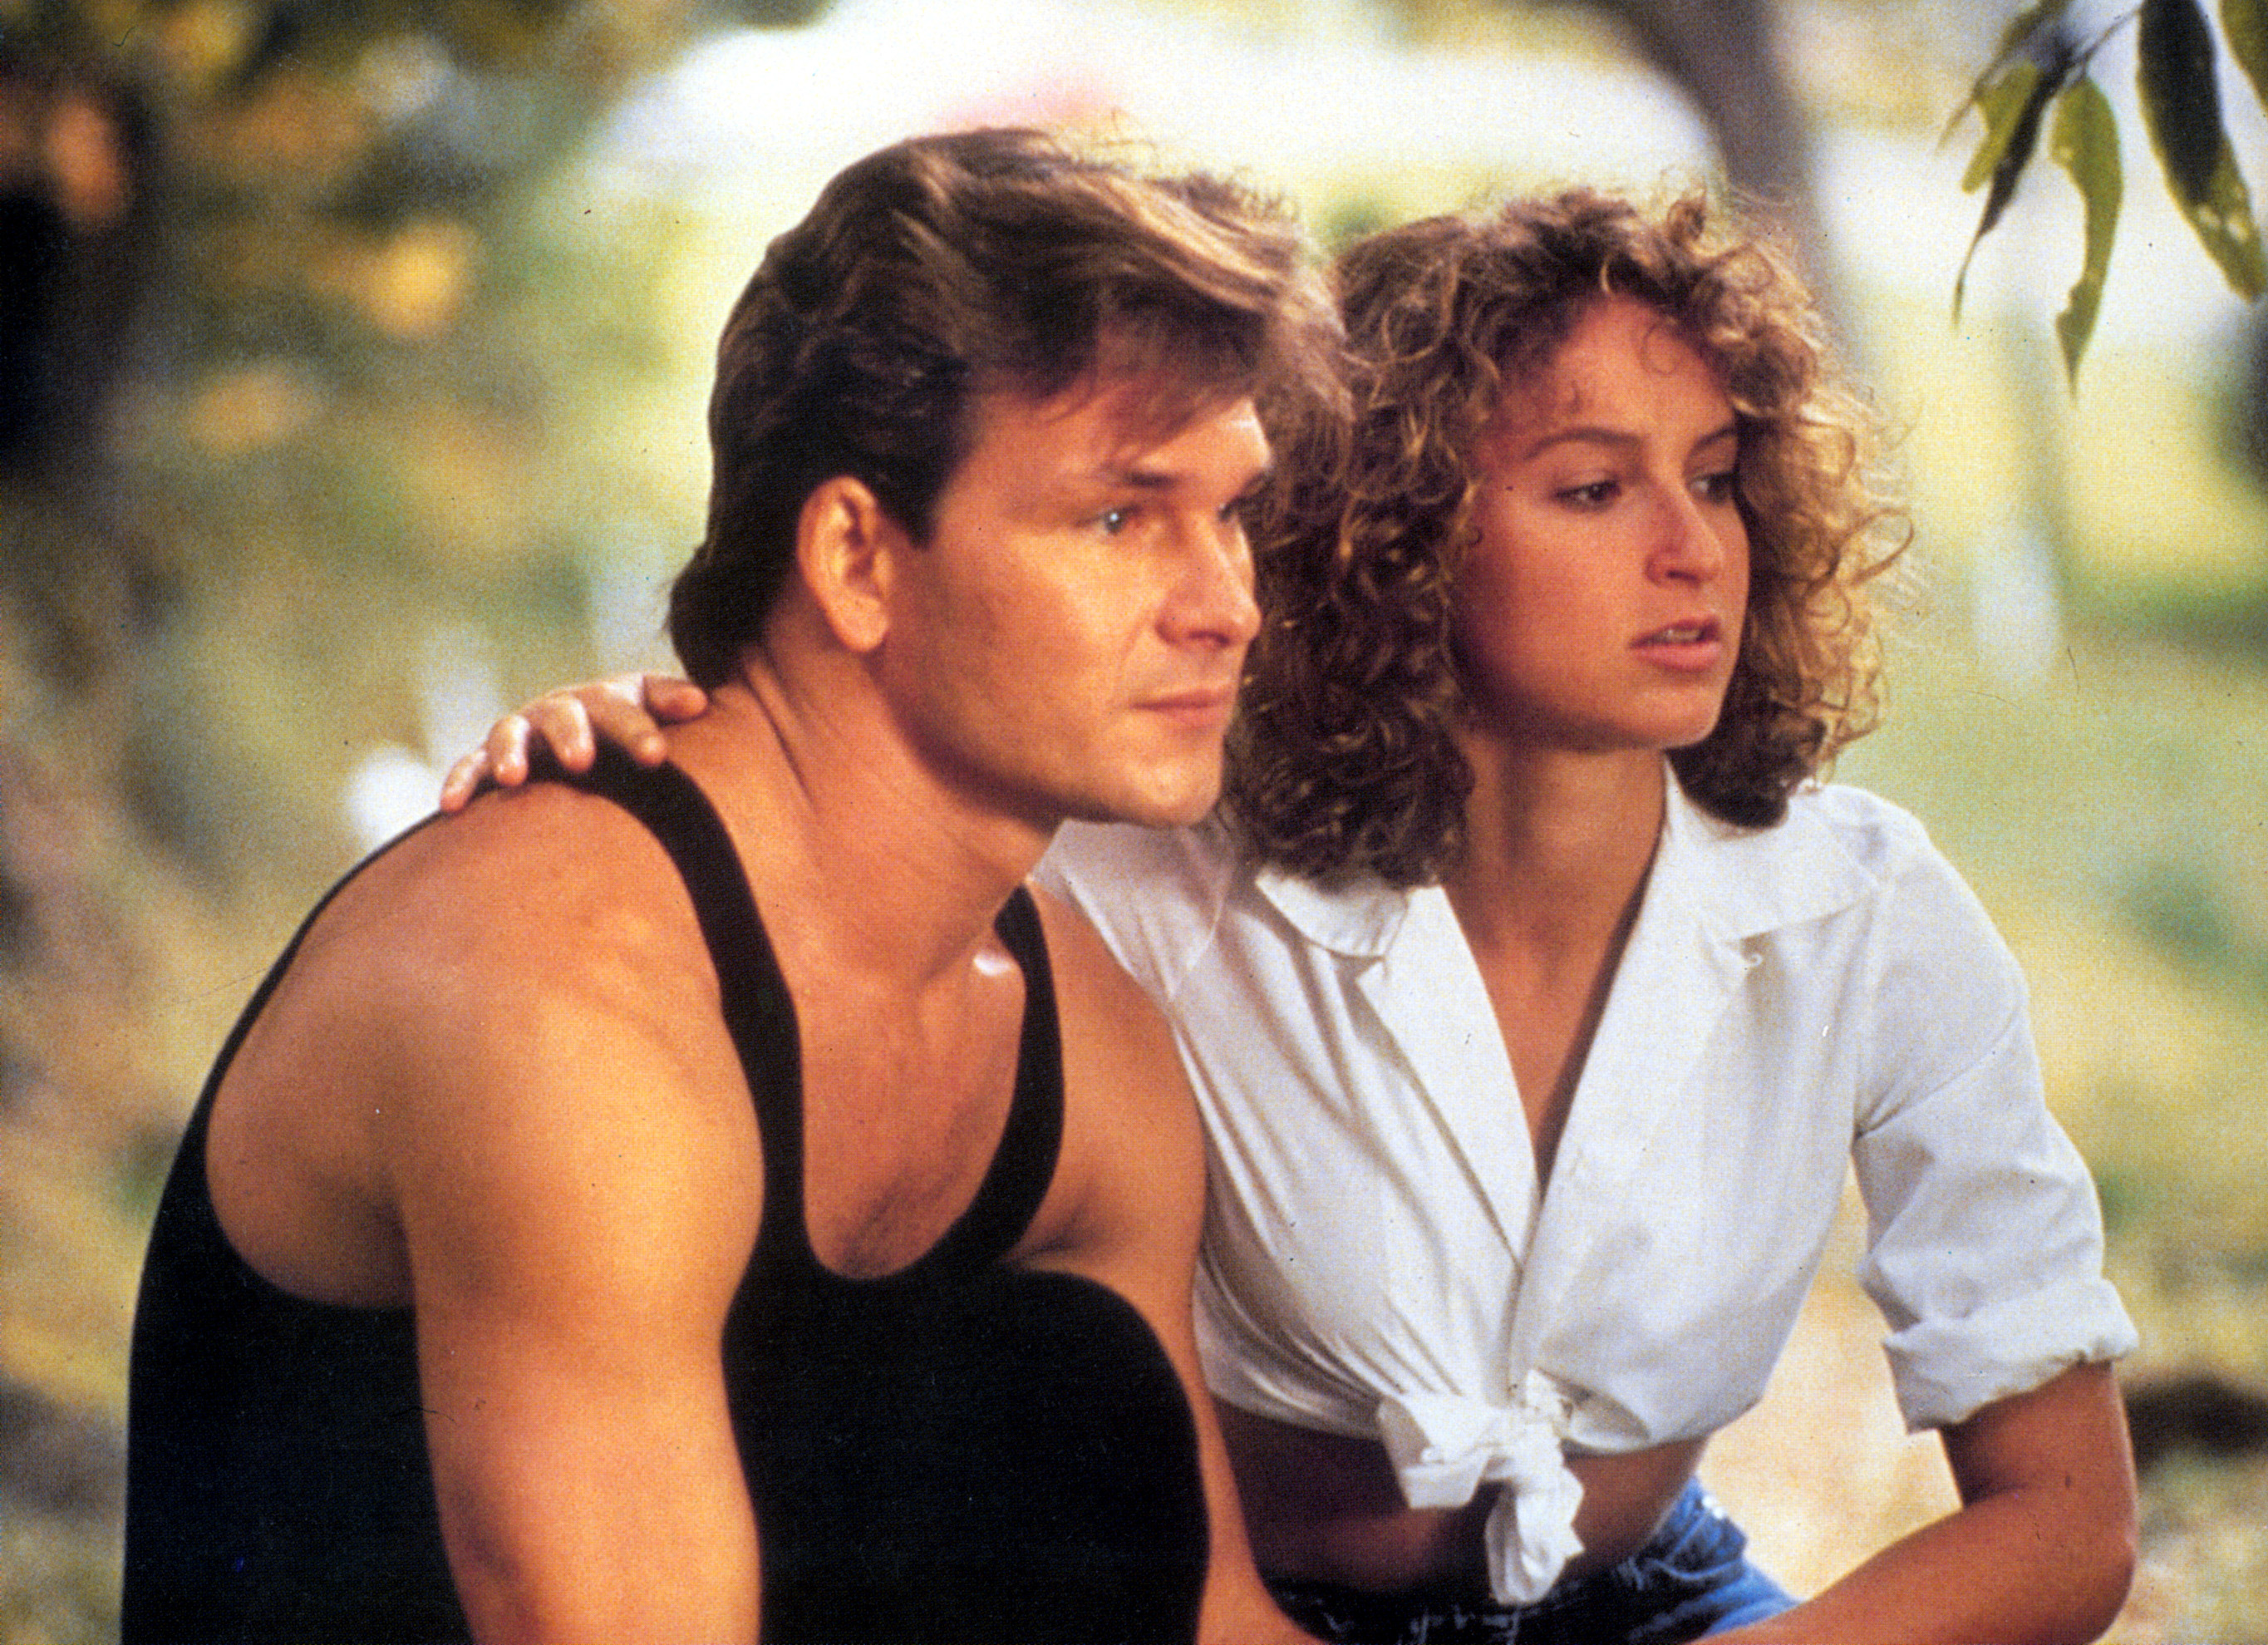 Dirty dancing patrick swayze photo 36079856 fanpop - Pelicula dirty dancing ...